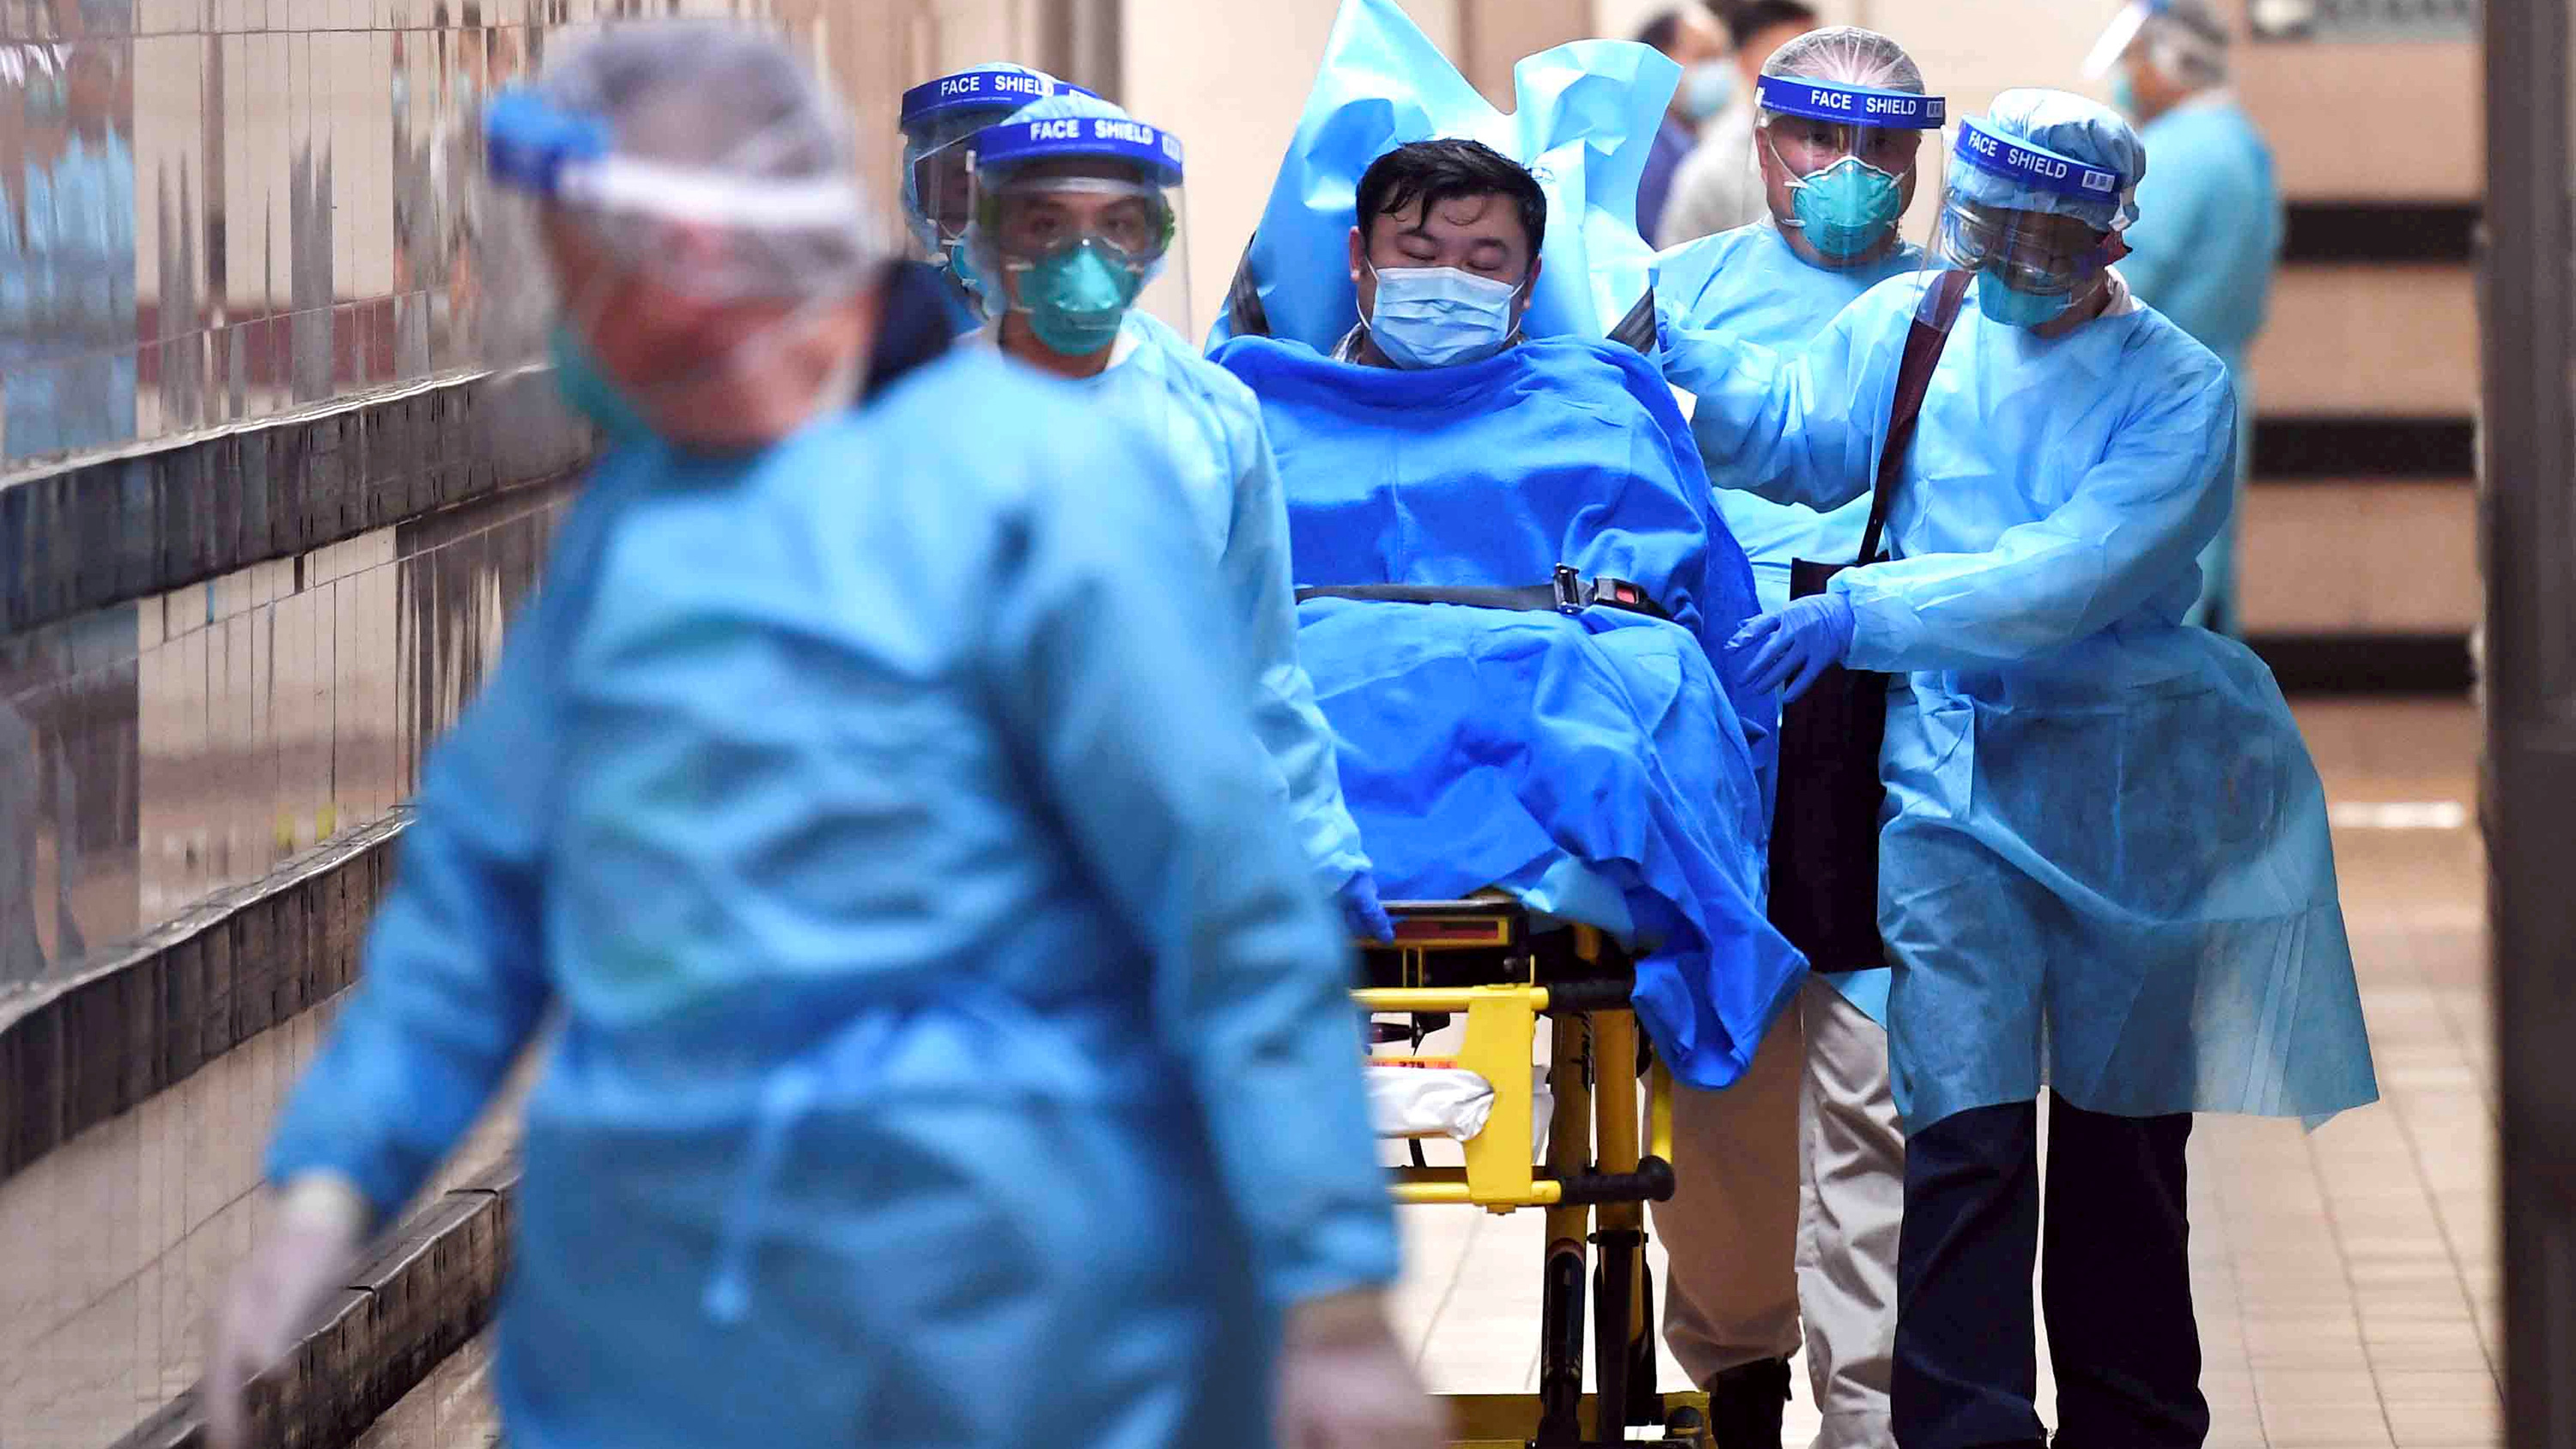 Picture shows a patient on a wheeled bed surrounded by four health care providers moving him with another caregiver walking in front. They all are covered head-to-toe in blue protective gear.